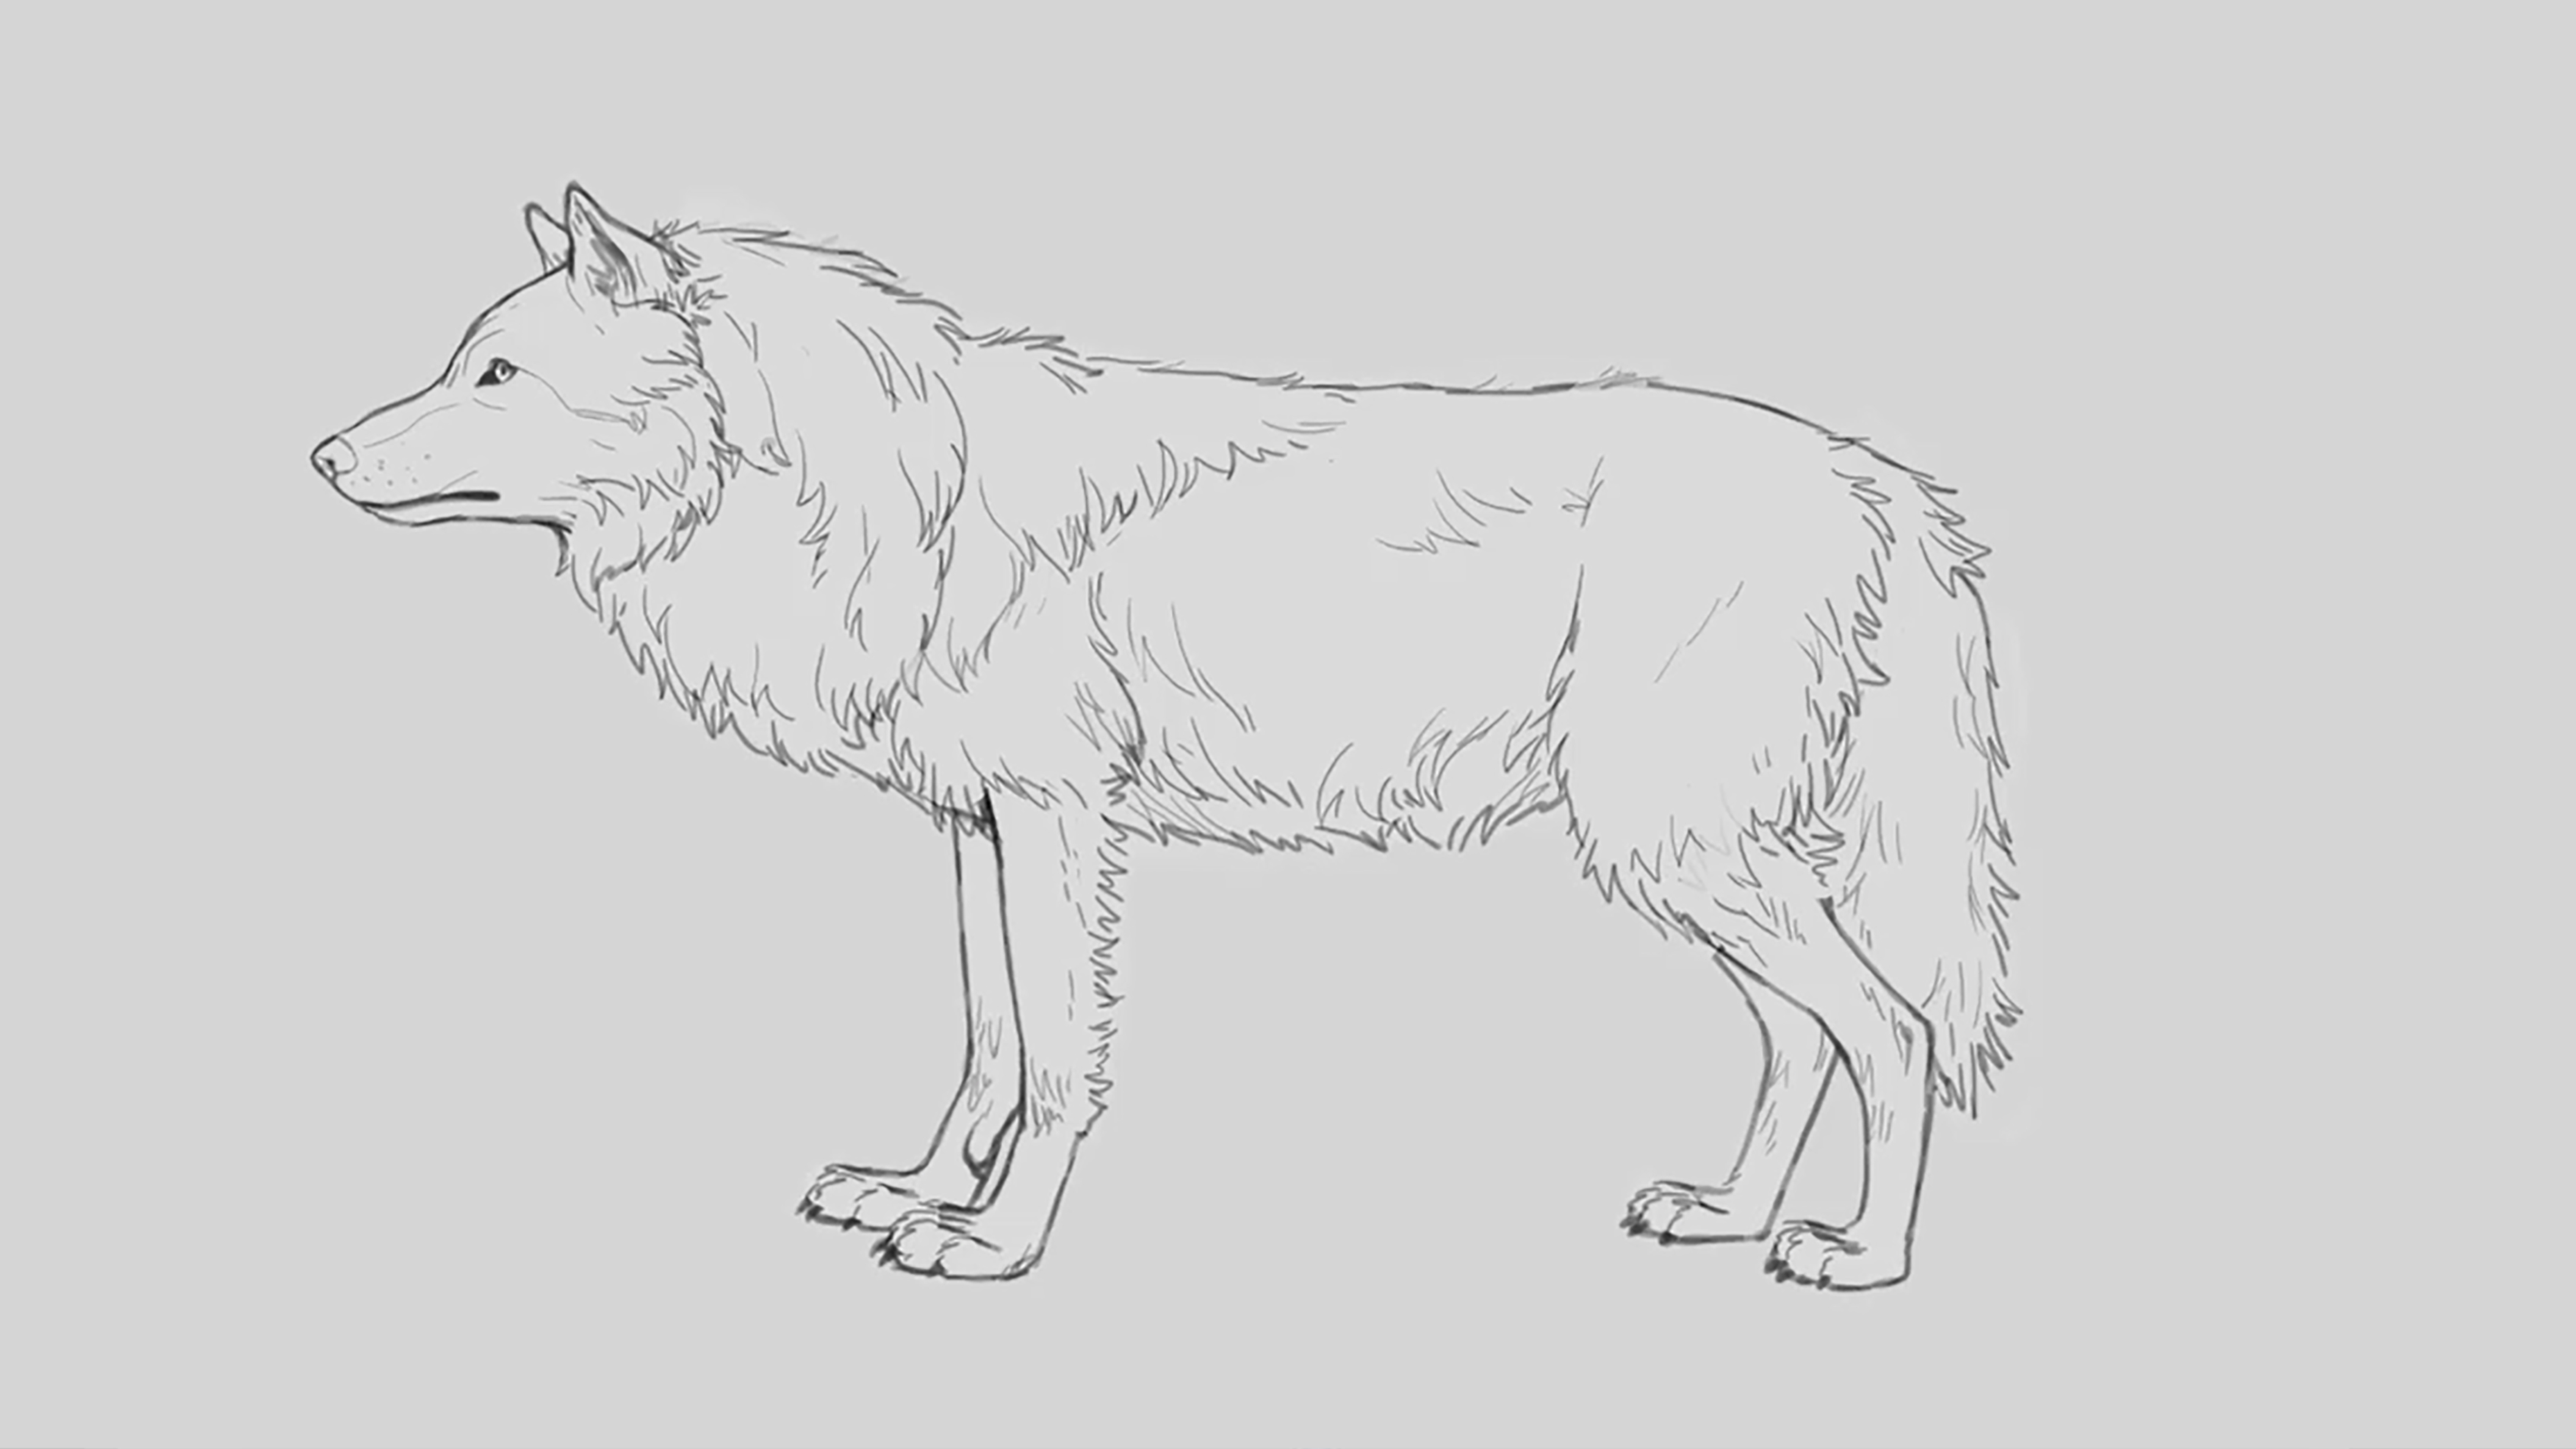 Pencil sketch of a wolf with a full winter coat